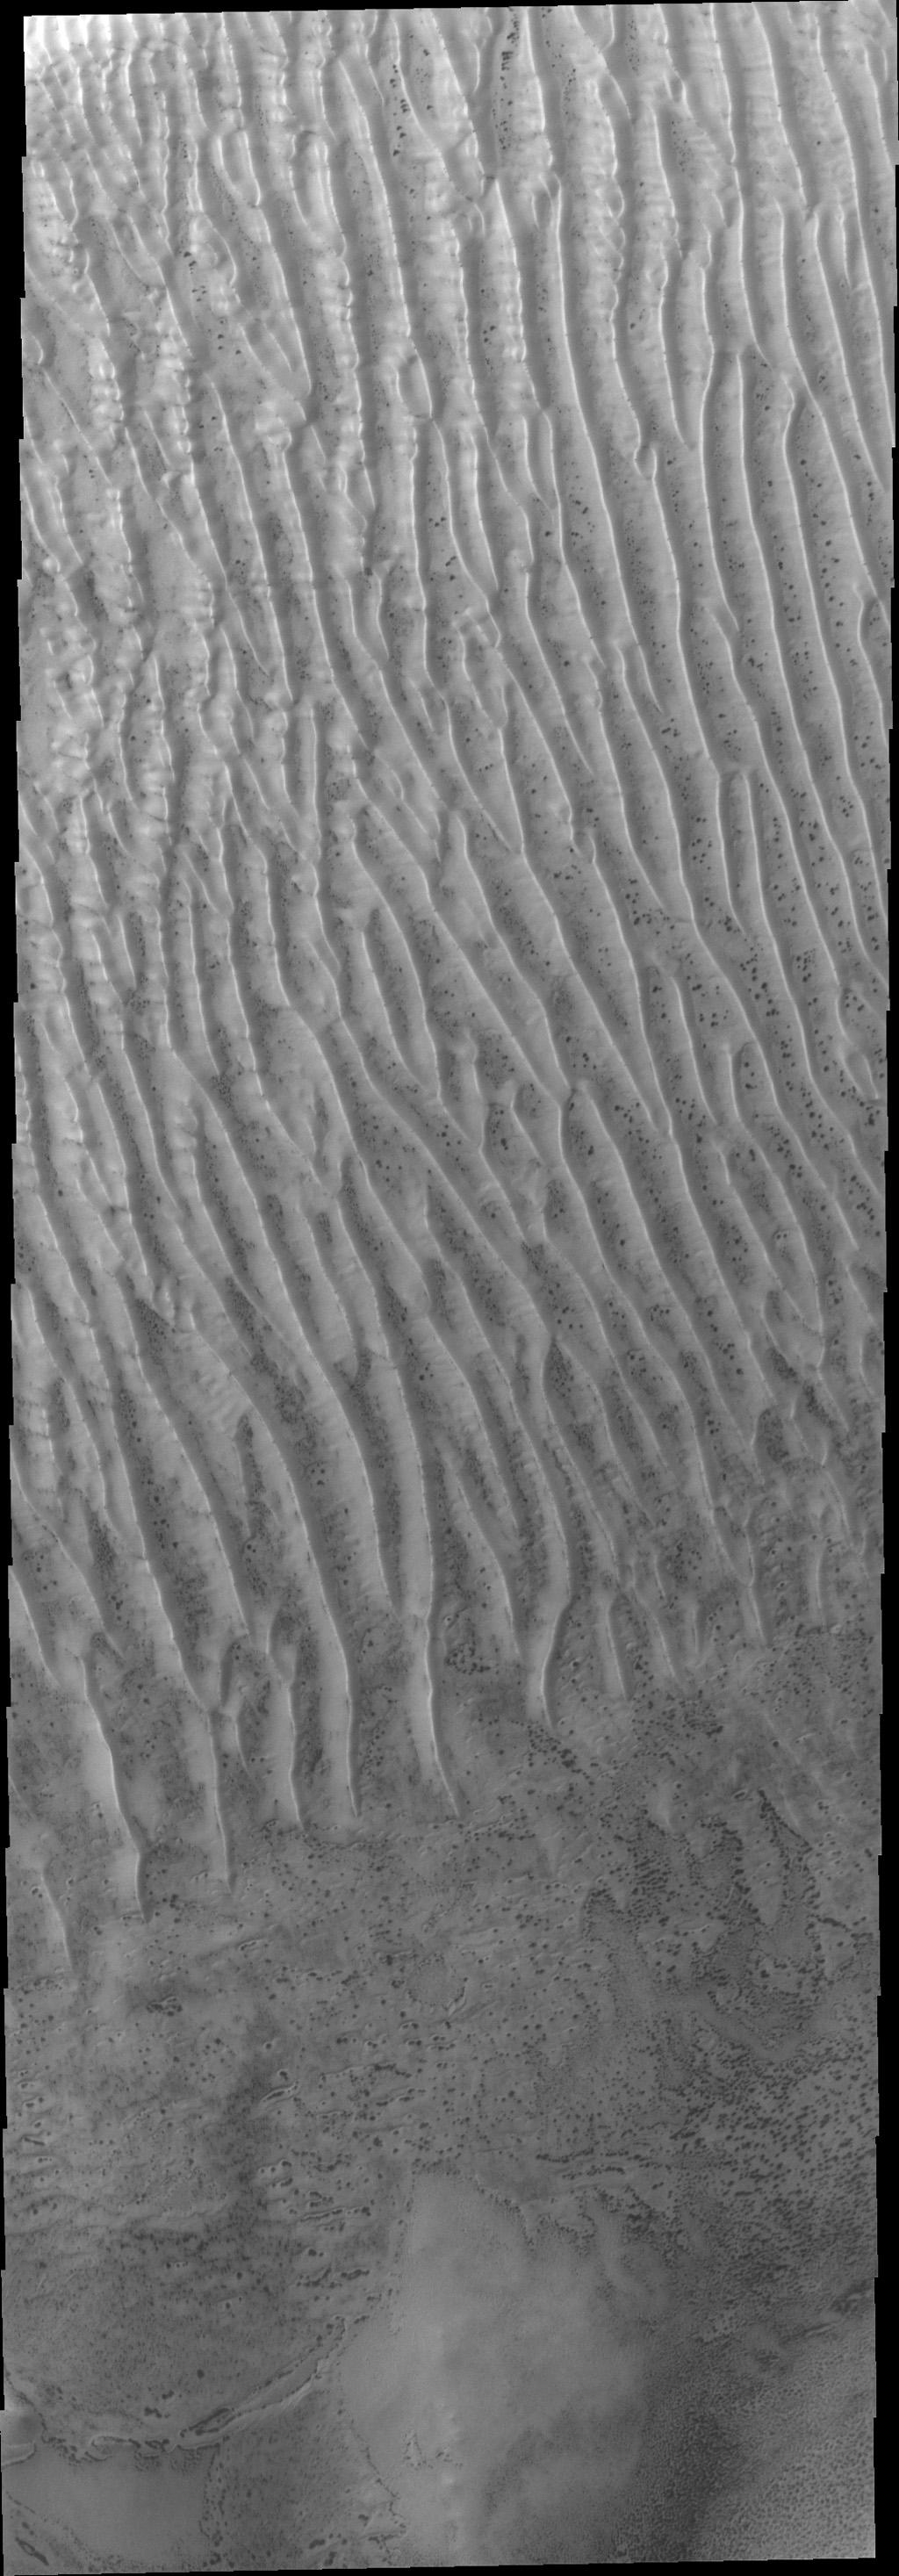 These dunes in Richardson Crater are still frost covered in this image captured by NASA's Mars Odyssey. As spring deepens the frost will sublimate and the dark dunes will appear.